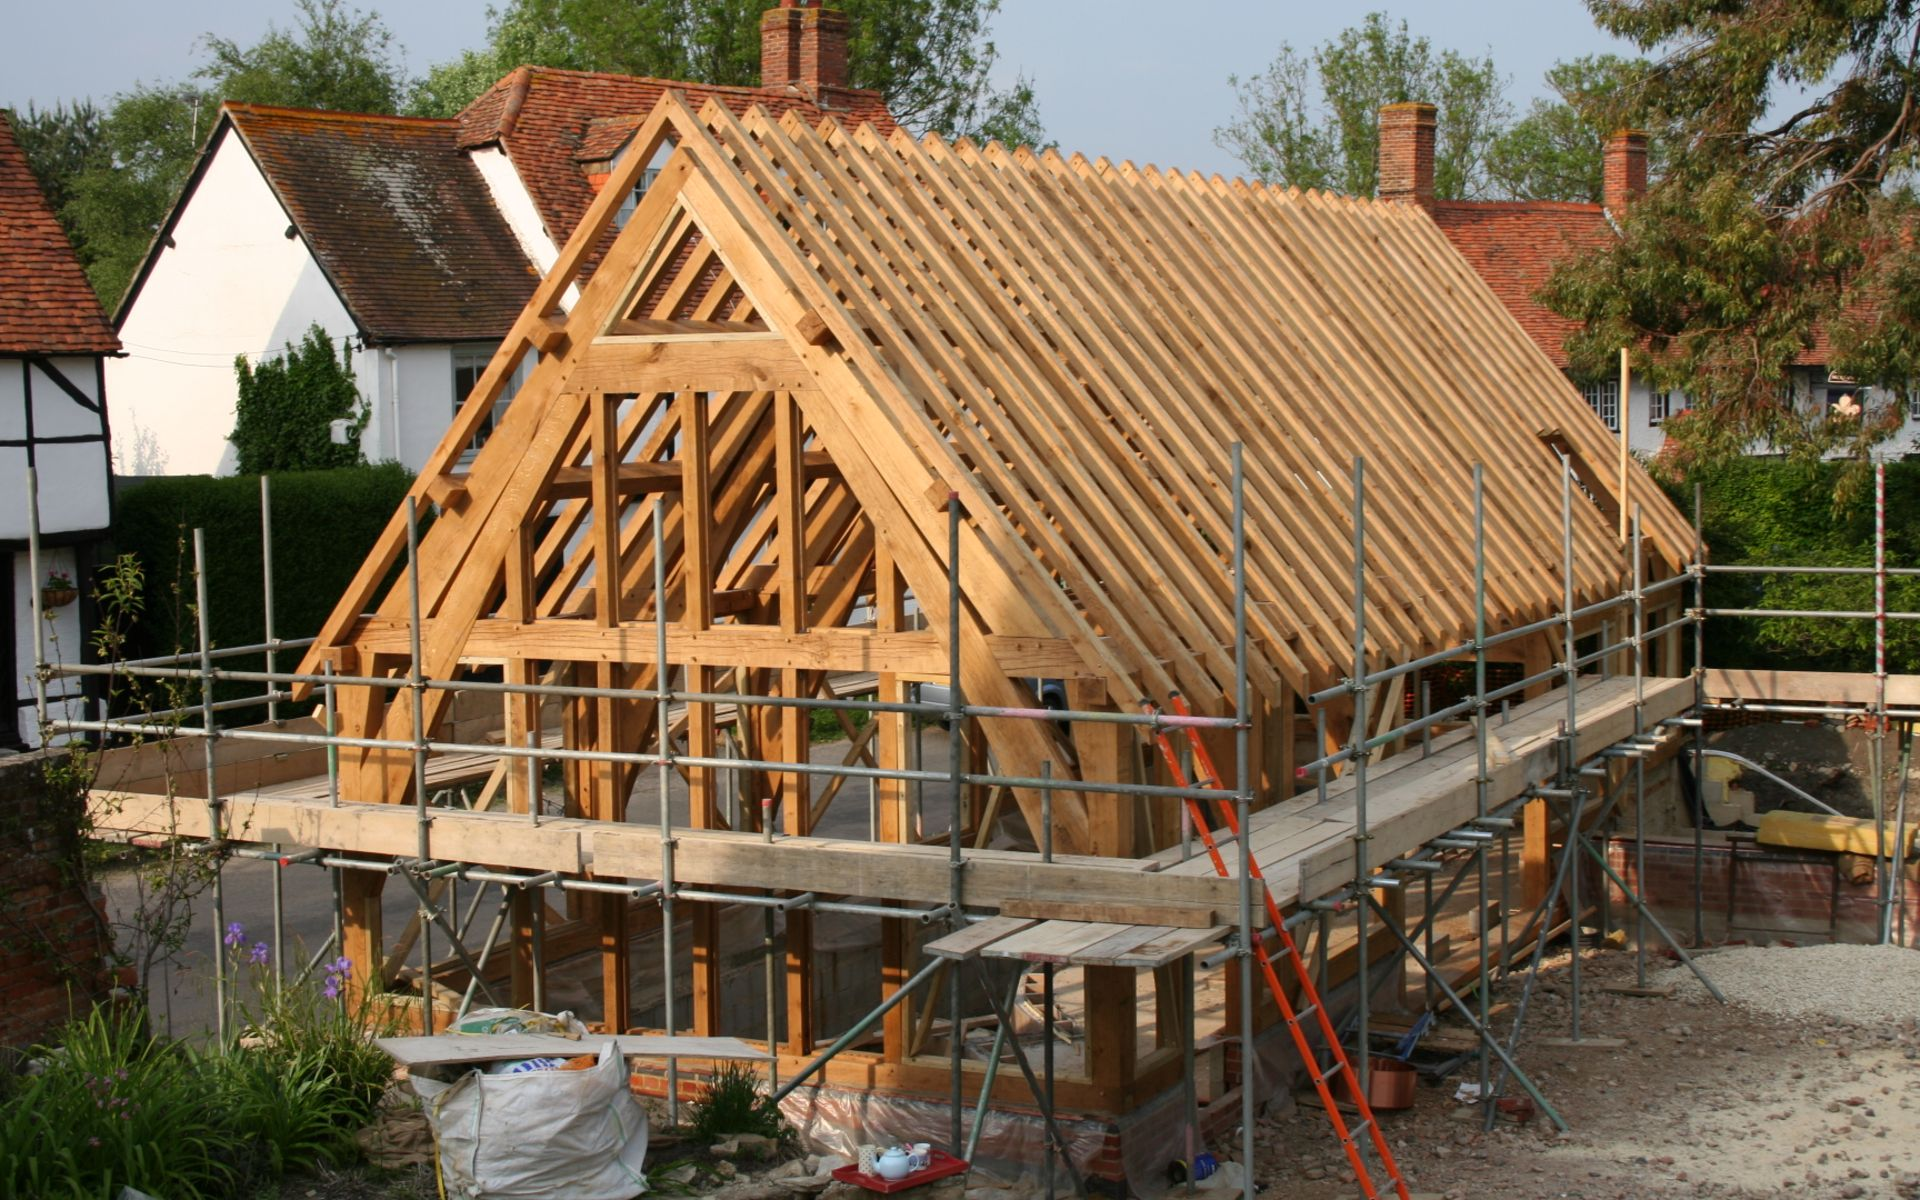 construction procurement advice for residential projects